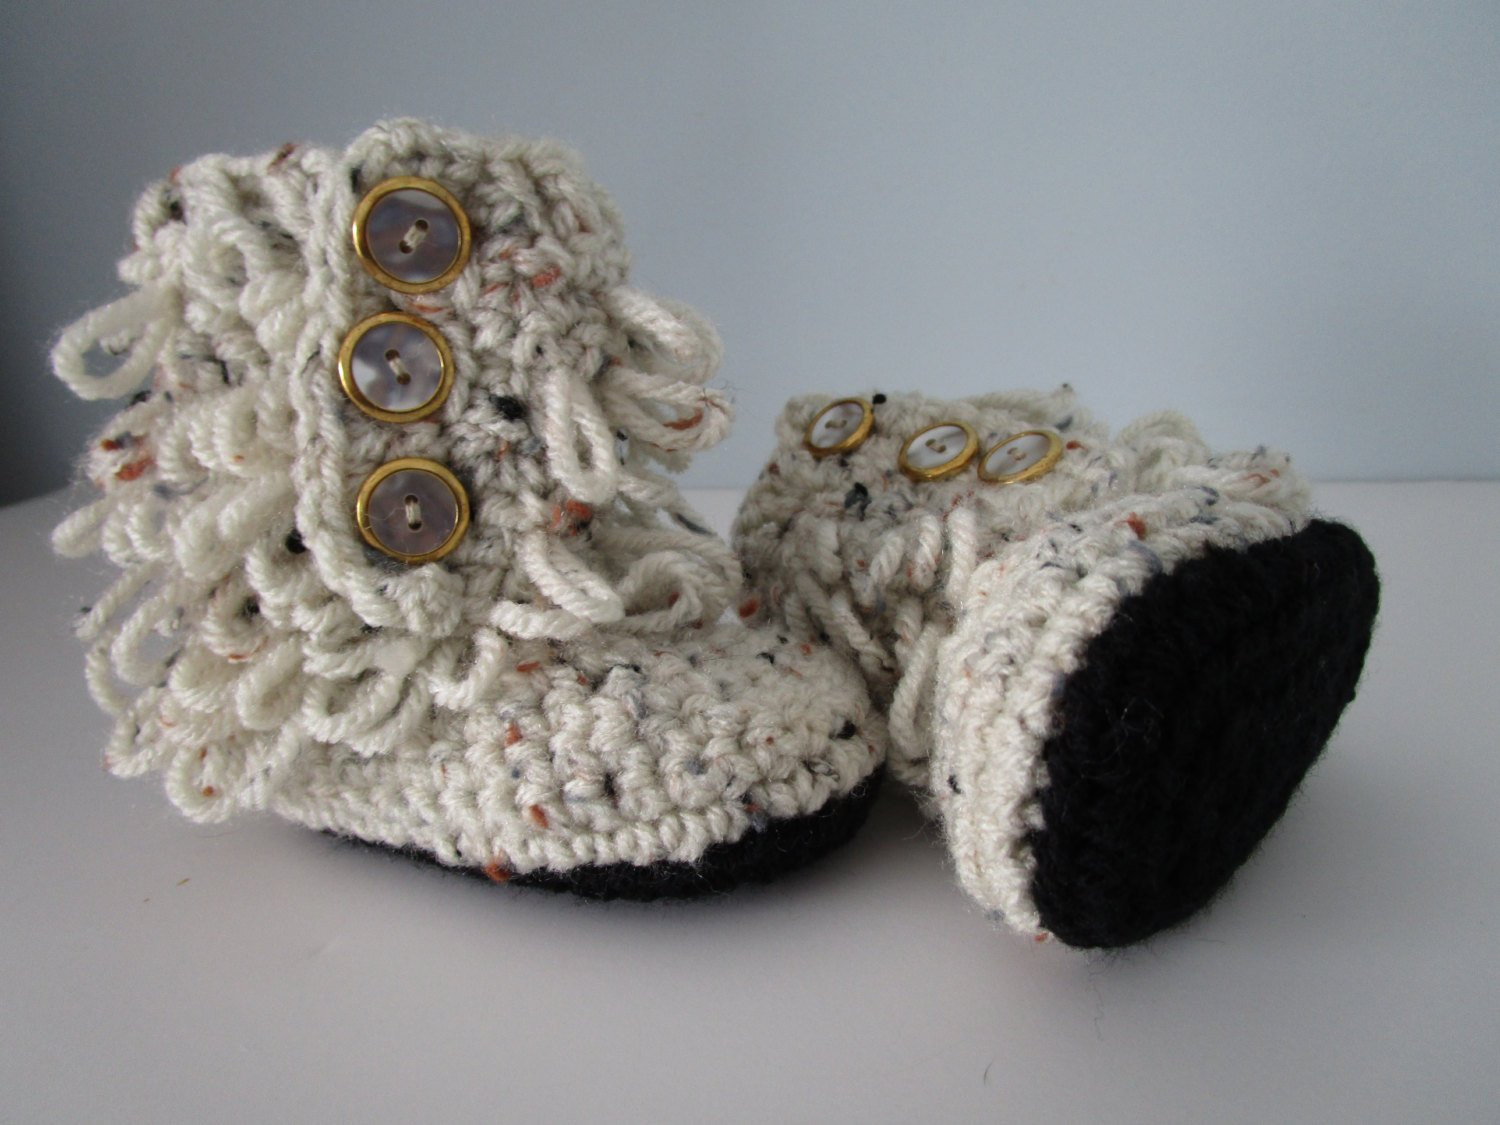 Beautiful Crochet Ugg Boots Tutorial Crochet Ugg Of New 40 Ideas Crochet Ugg